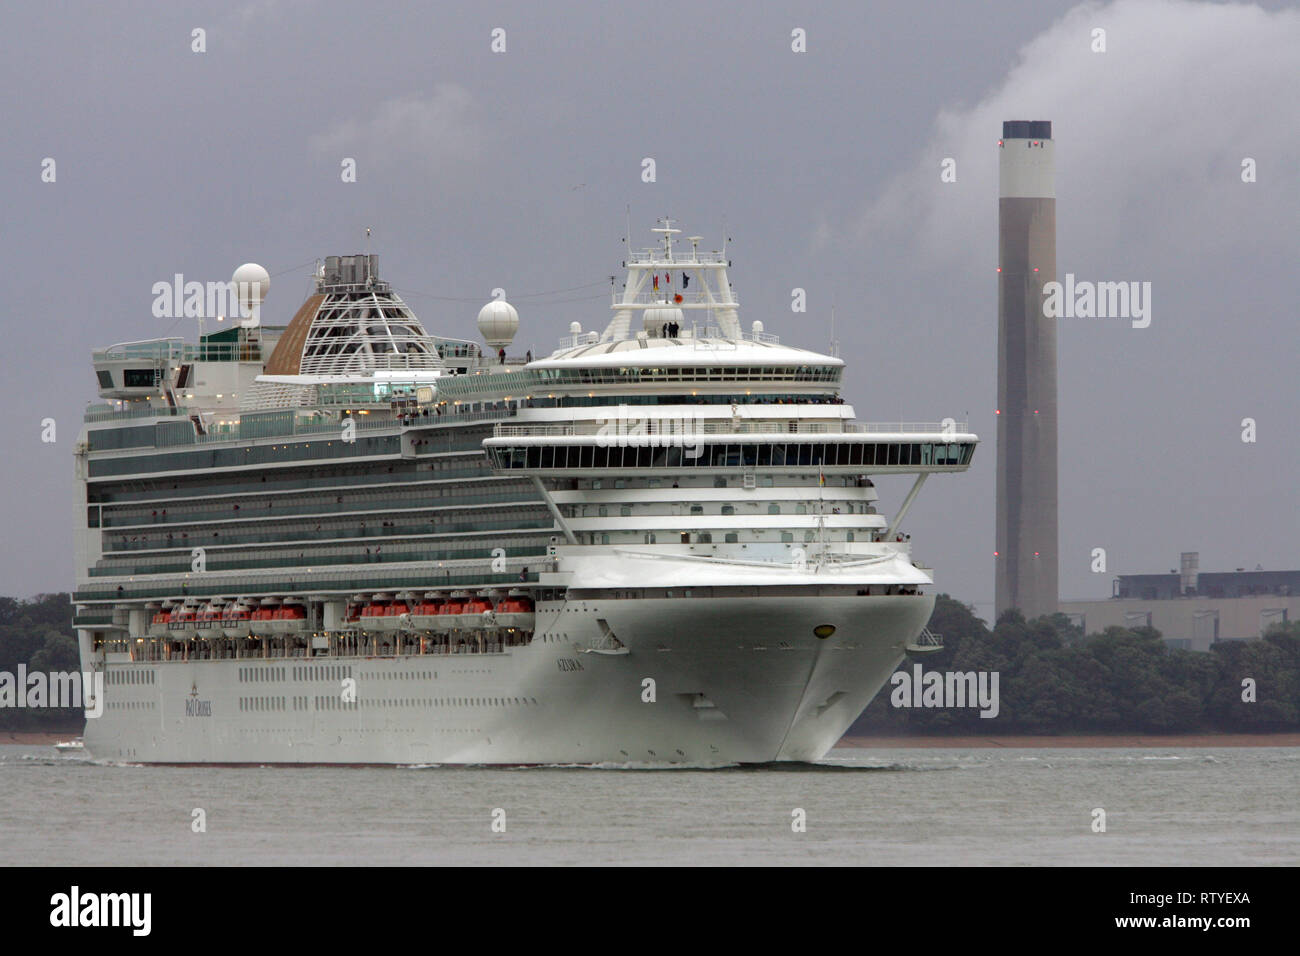 Pollution,Azura, Luxury, travel, luxurious, wedding, honeymoon, suite, cabin,, Cruise Liner, The Solent, Cowes, isle of Wight, England, UK, - Stock Image